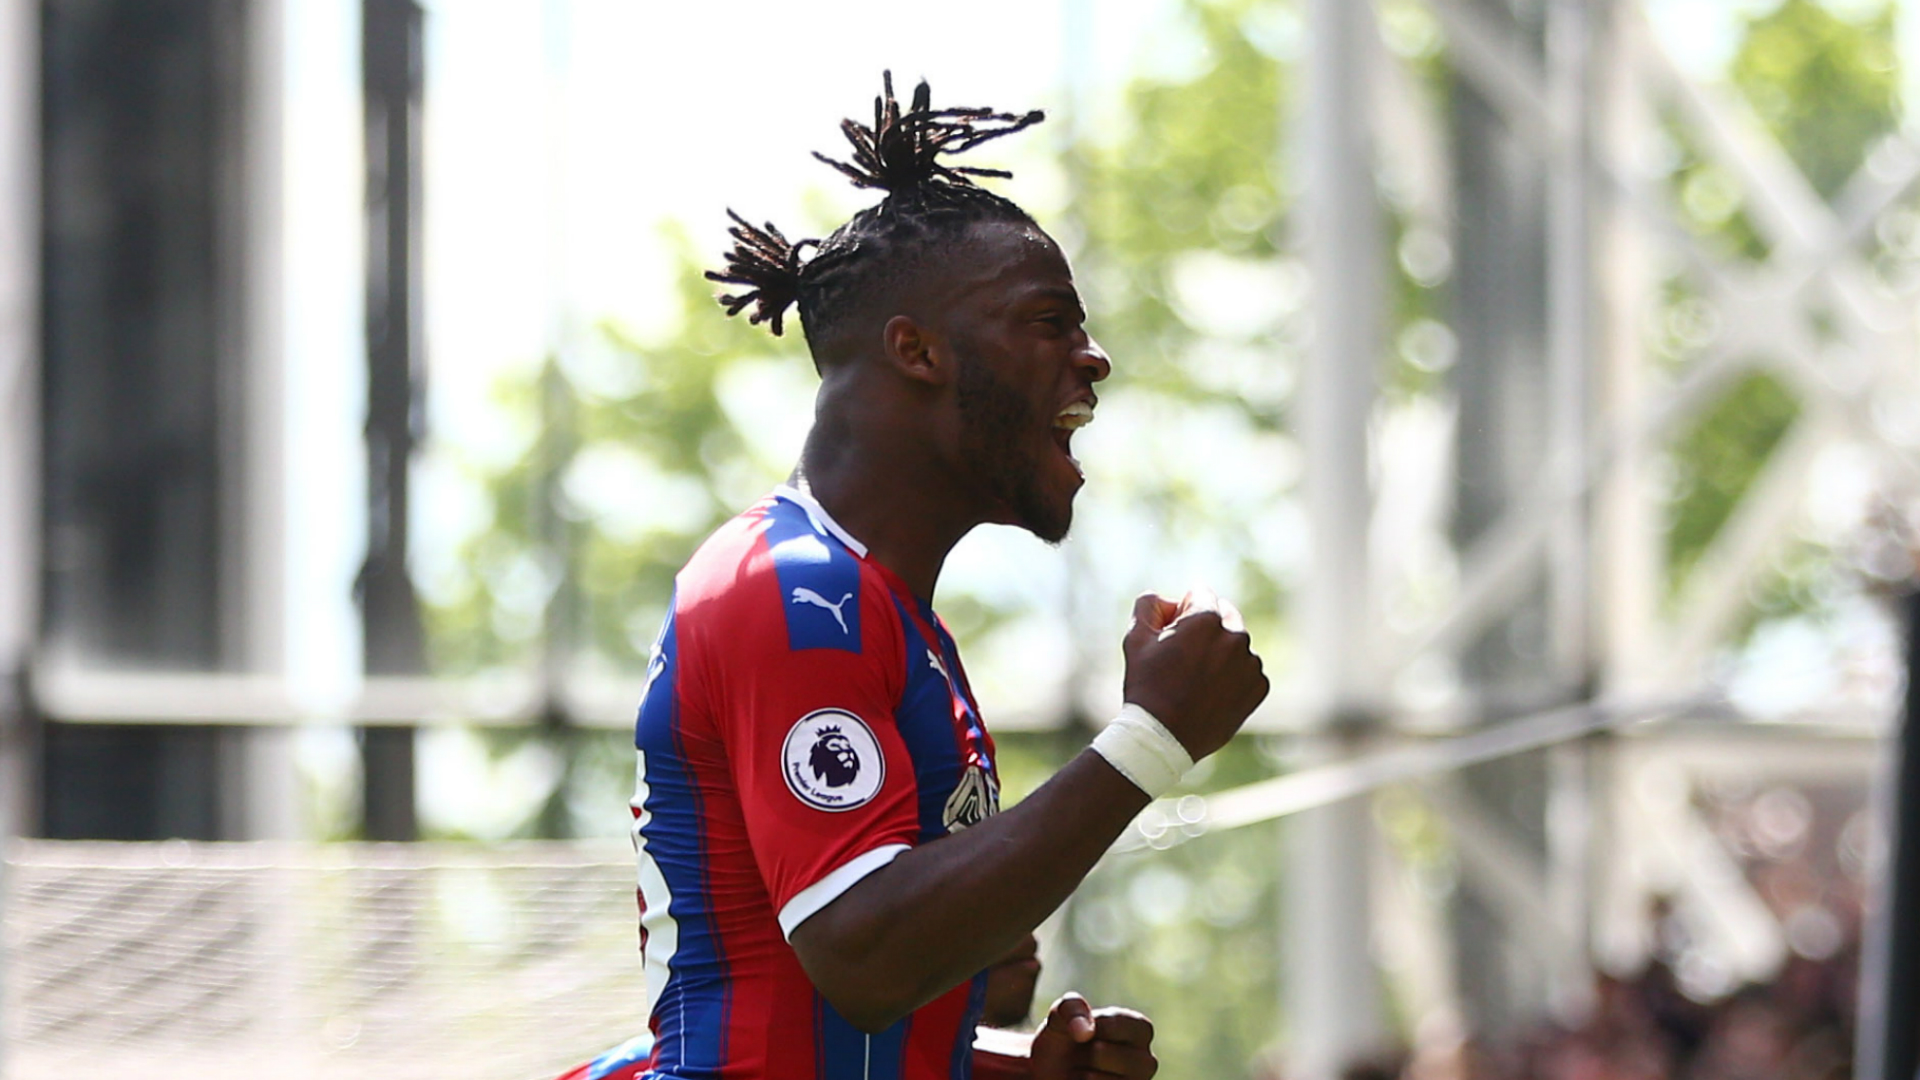 Crystal Palace 5 Bournemouth 3: Batshuayi hits brace as Eagles finish in style